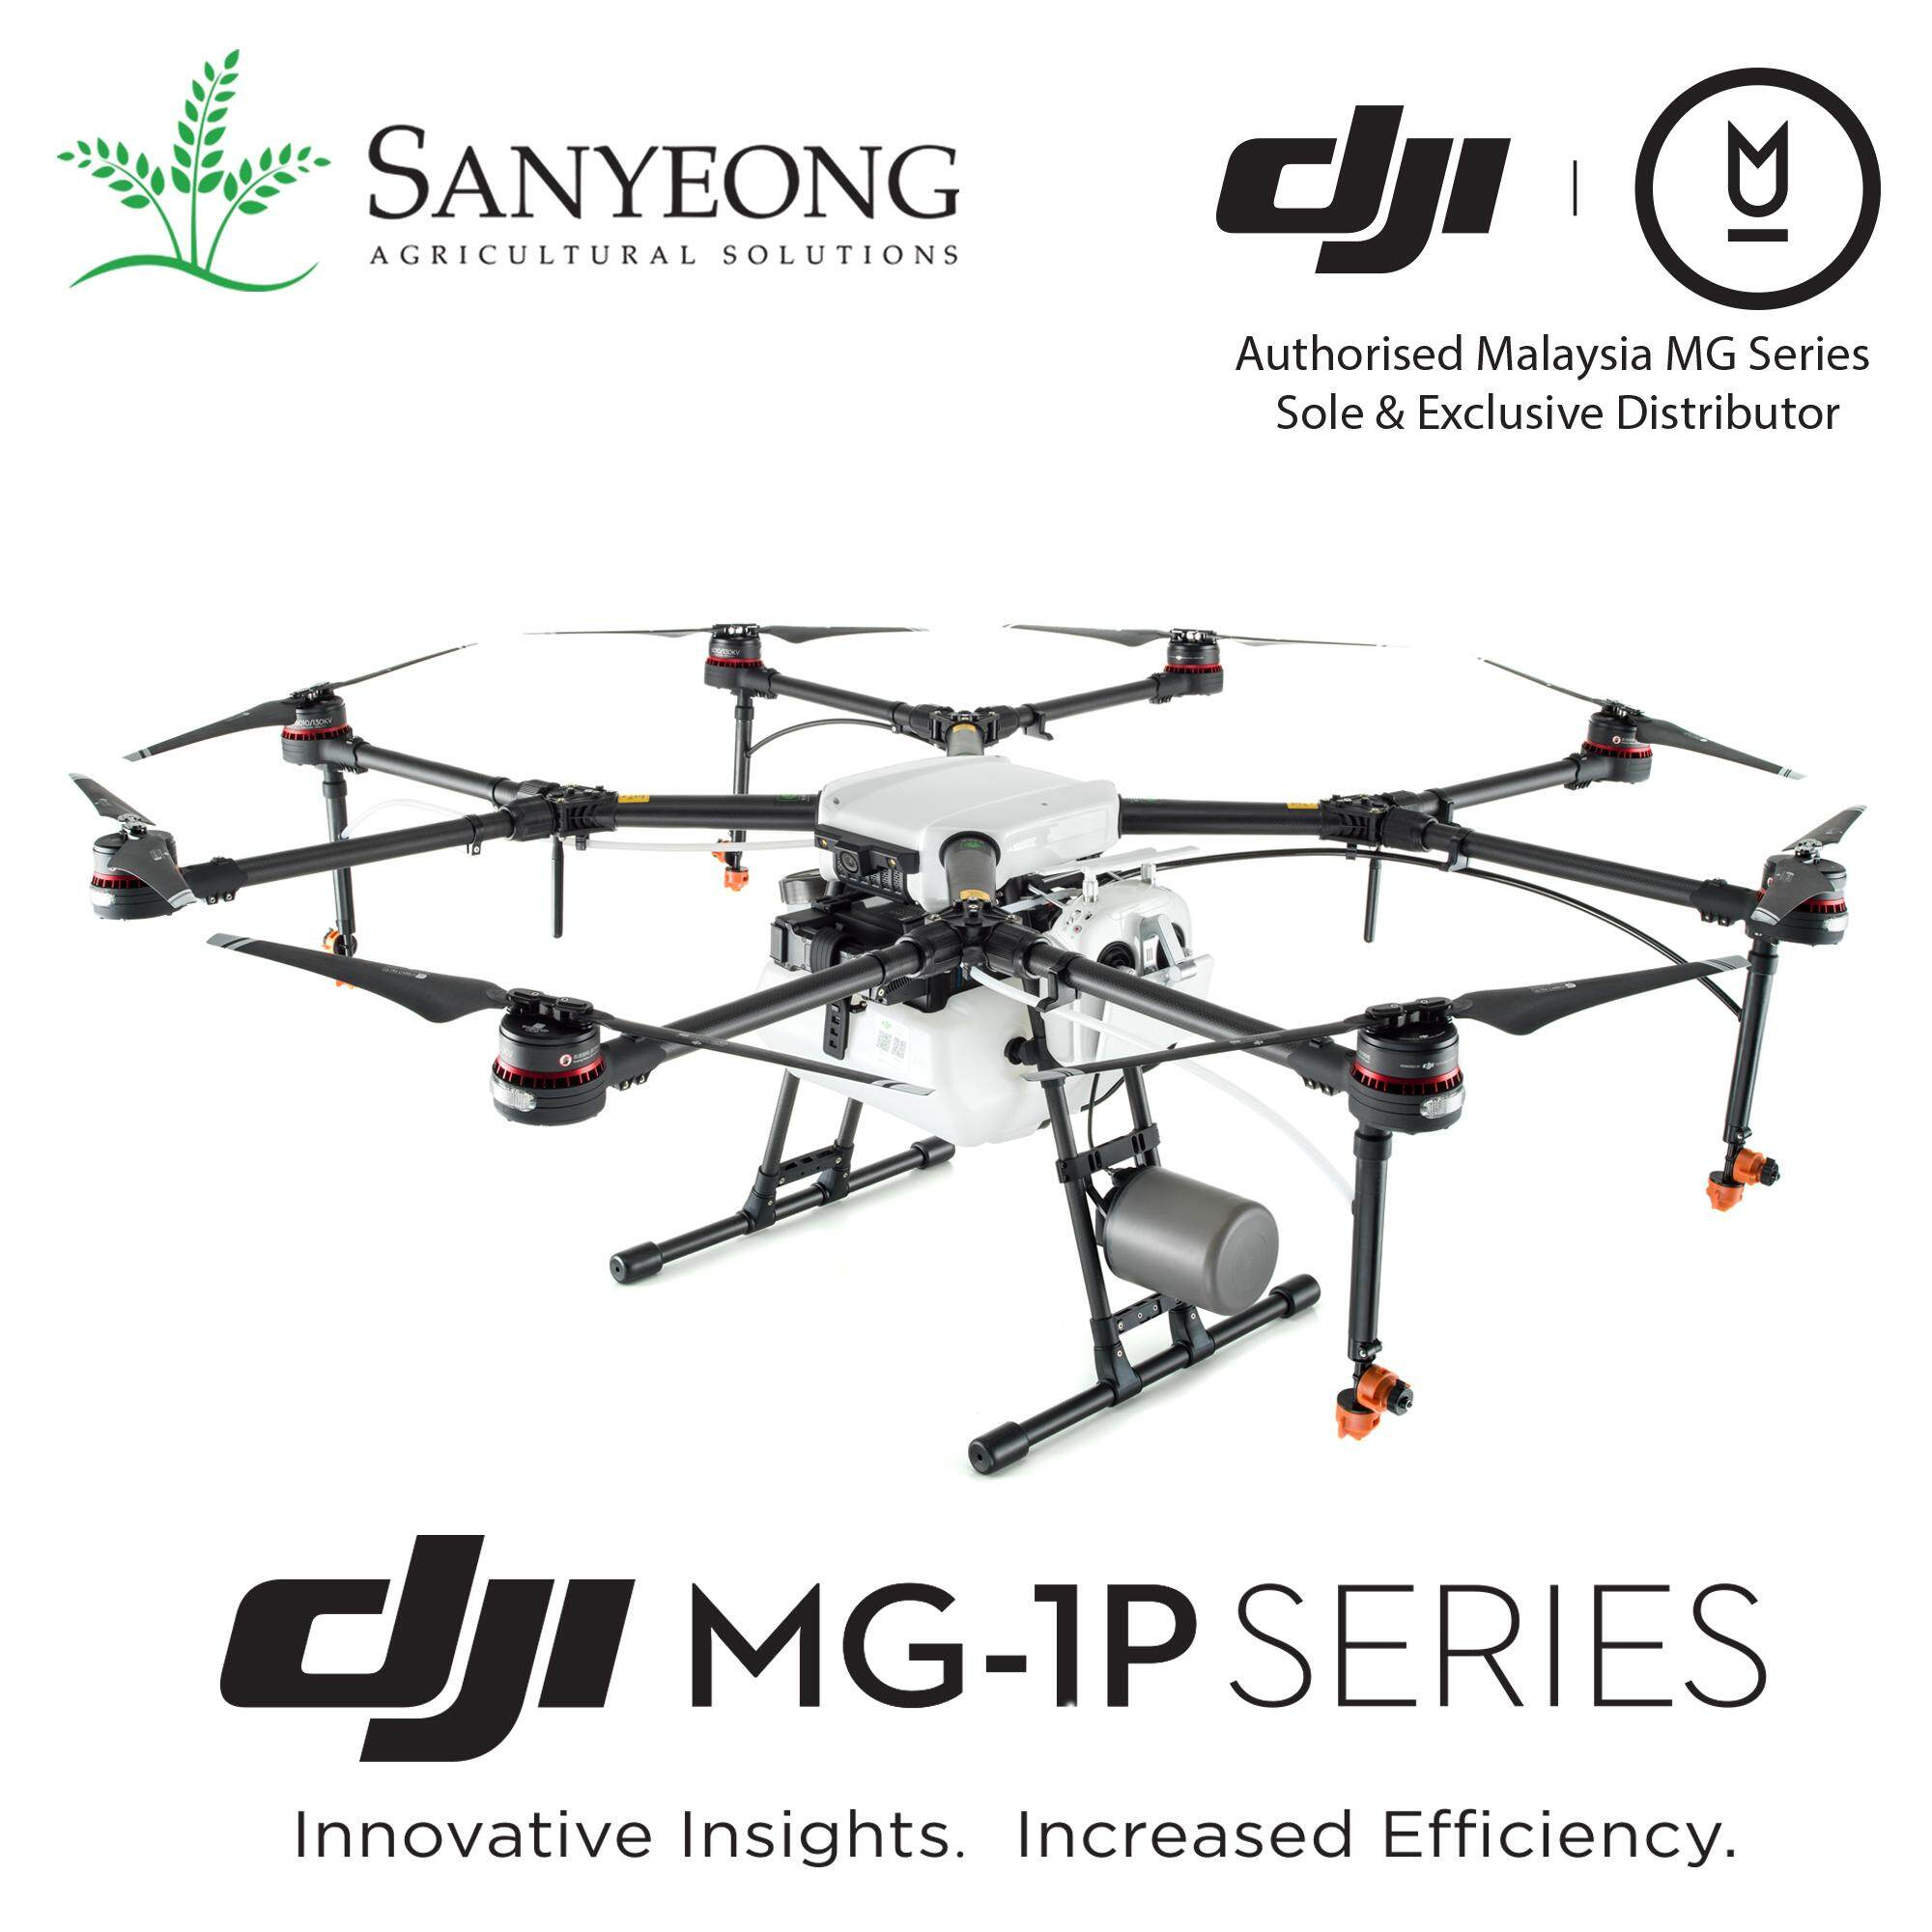 Dji Mg-1p Agriculture Spraying Drone (1 Year Dji Official Warranty) By Sanyeong Agricultural Solutions Sdn Bhd.